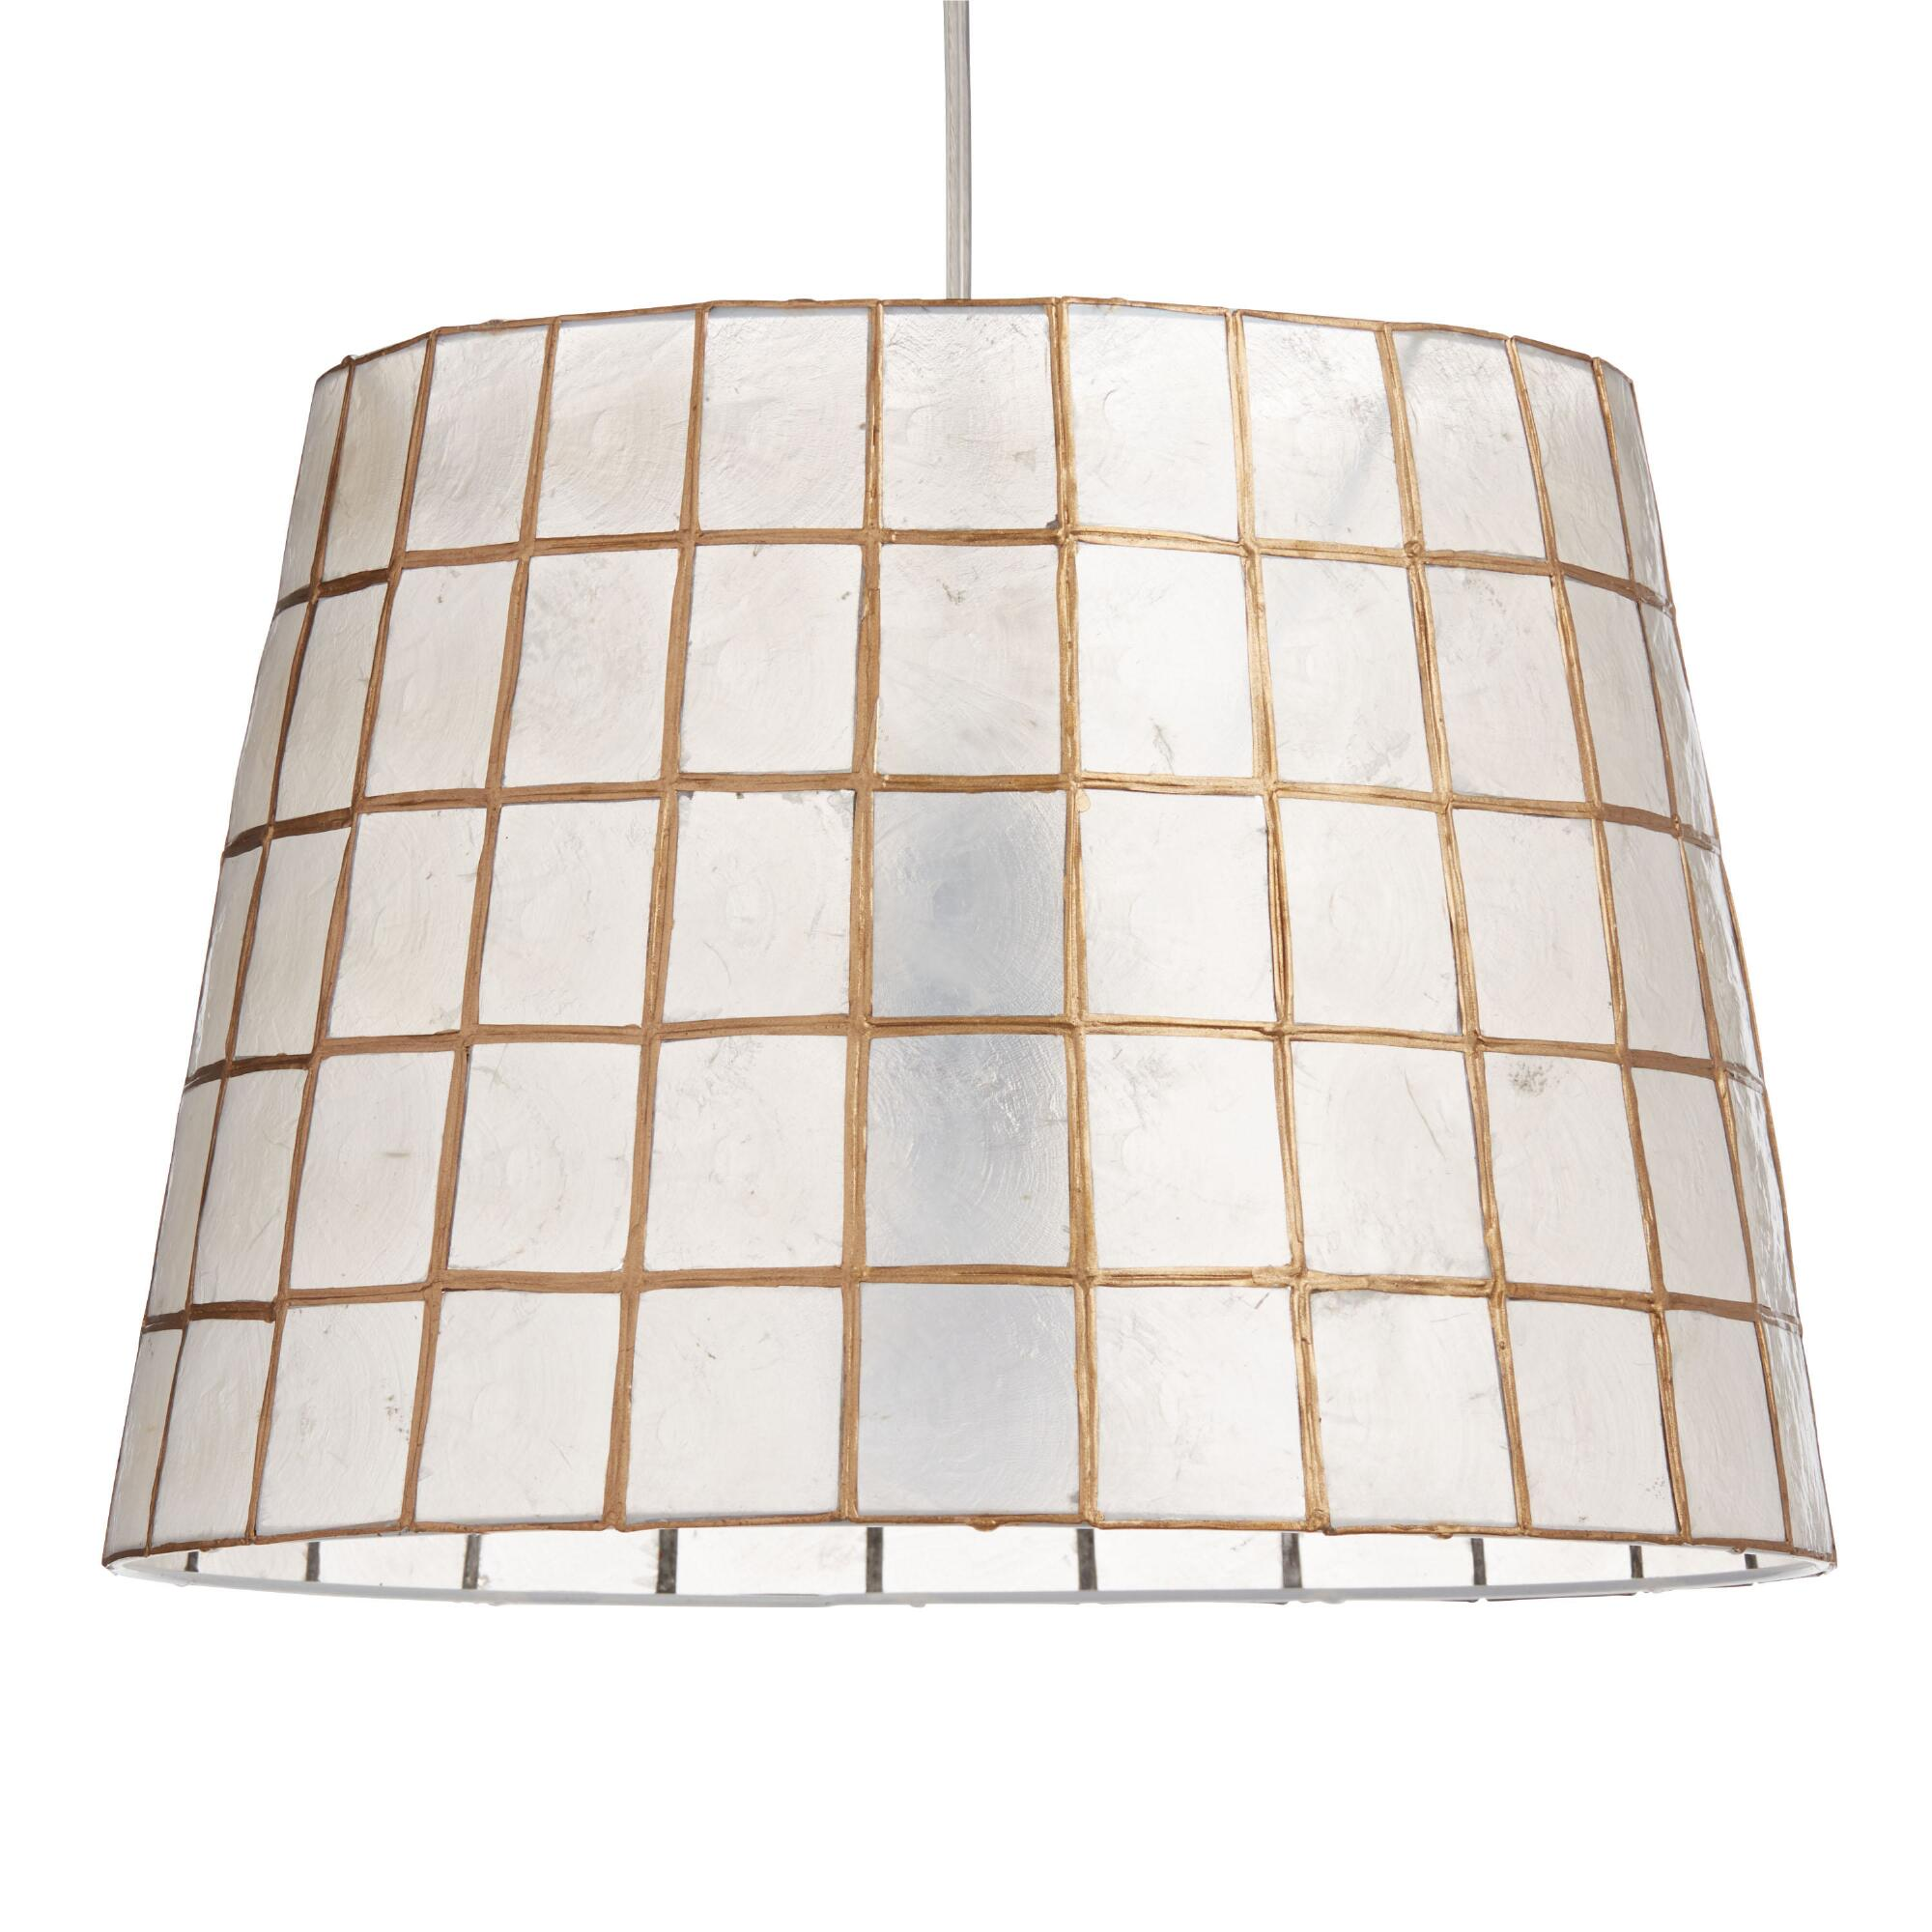 Gold Capiz Tapered Table Lamp Shade - Capiz Shell by World Market